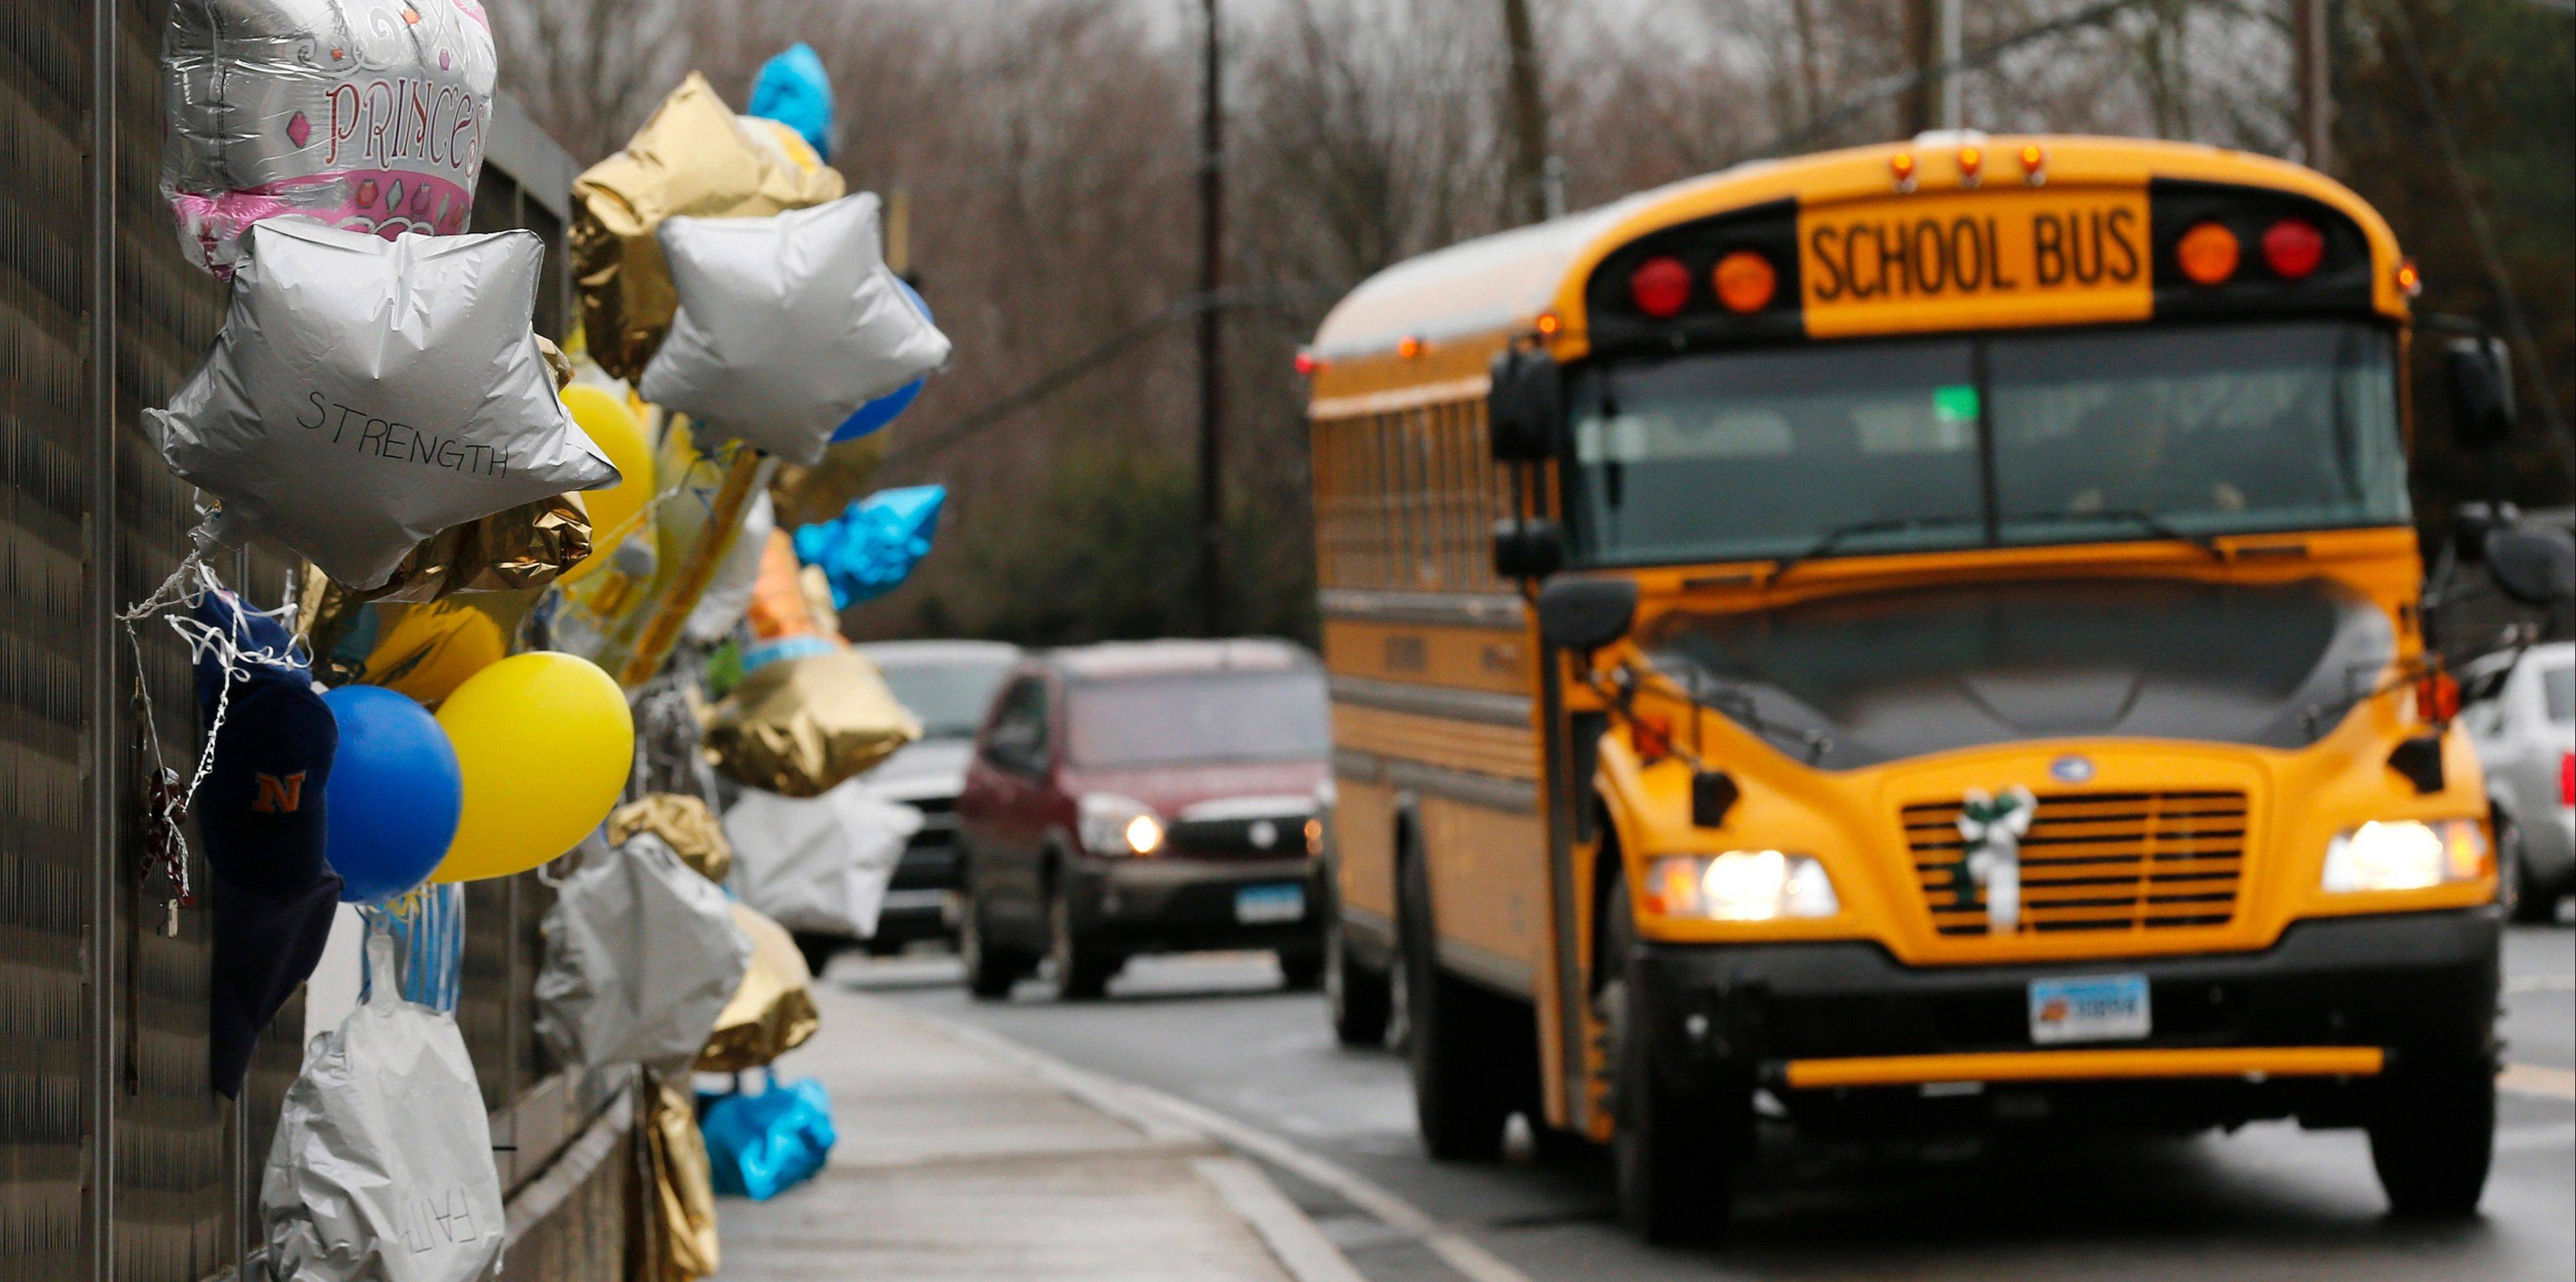 A Dec. 18, 2012, file photo shows a memorial in Newtown, Conn., for victims of the Sandy Hook Elementary School shooting.